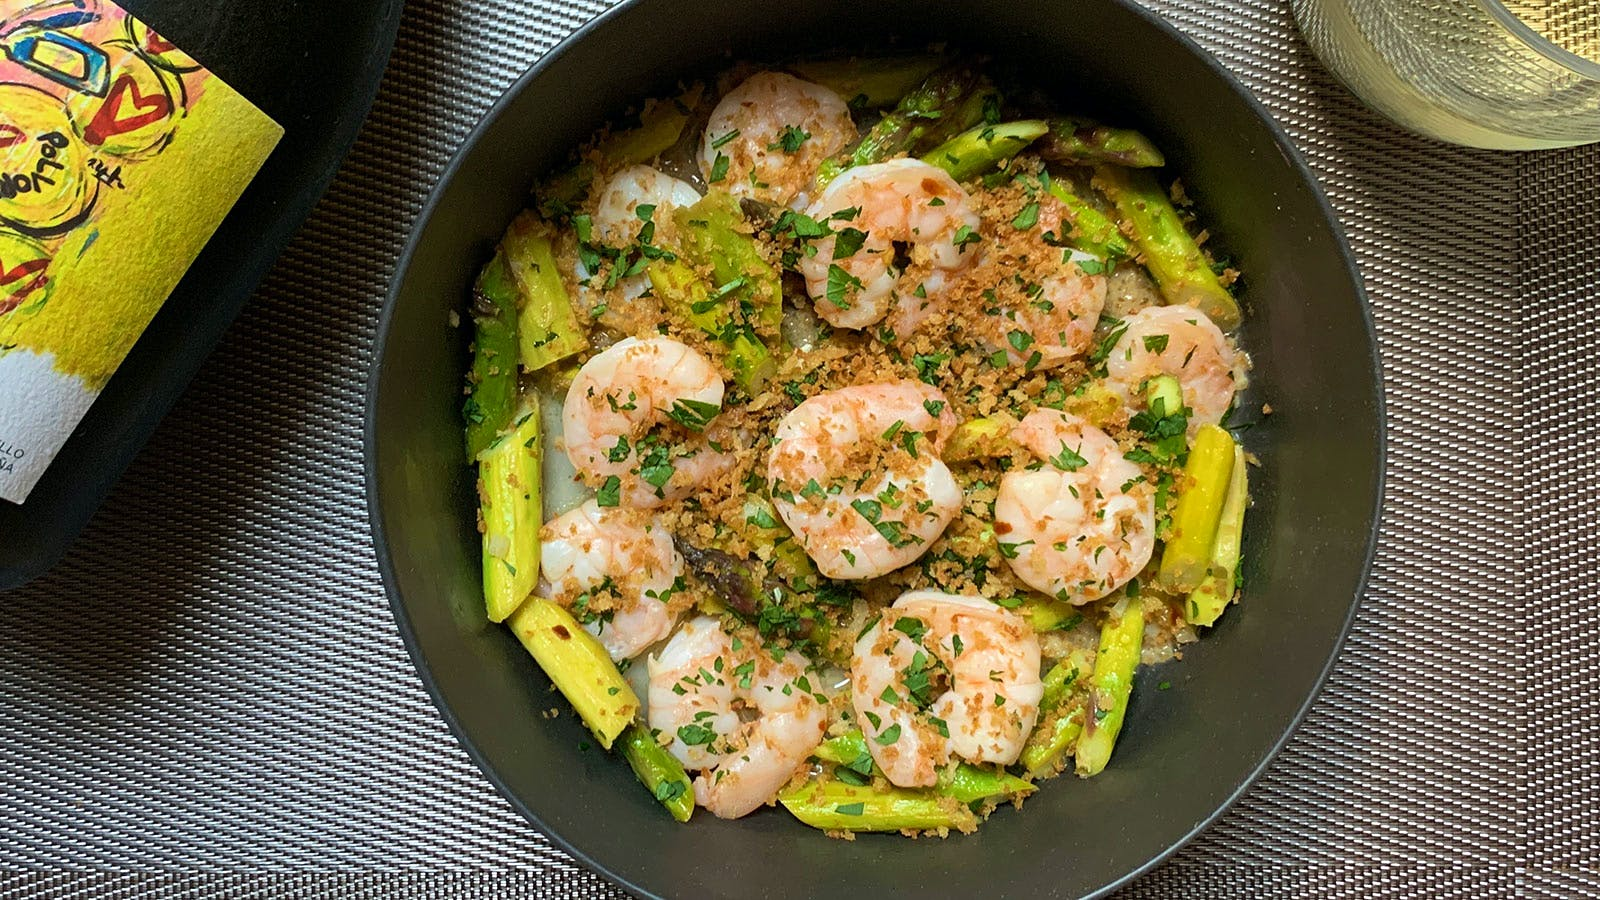 8 & $20: Lemony Shrimp and Asparagus with Garlic Breadcrumbs and Godello